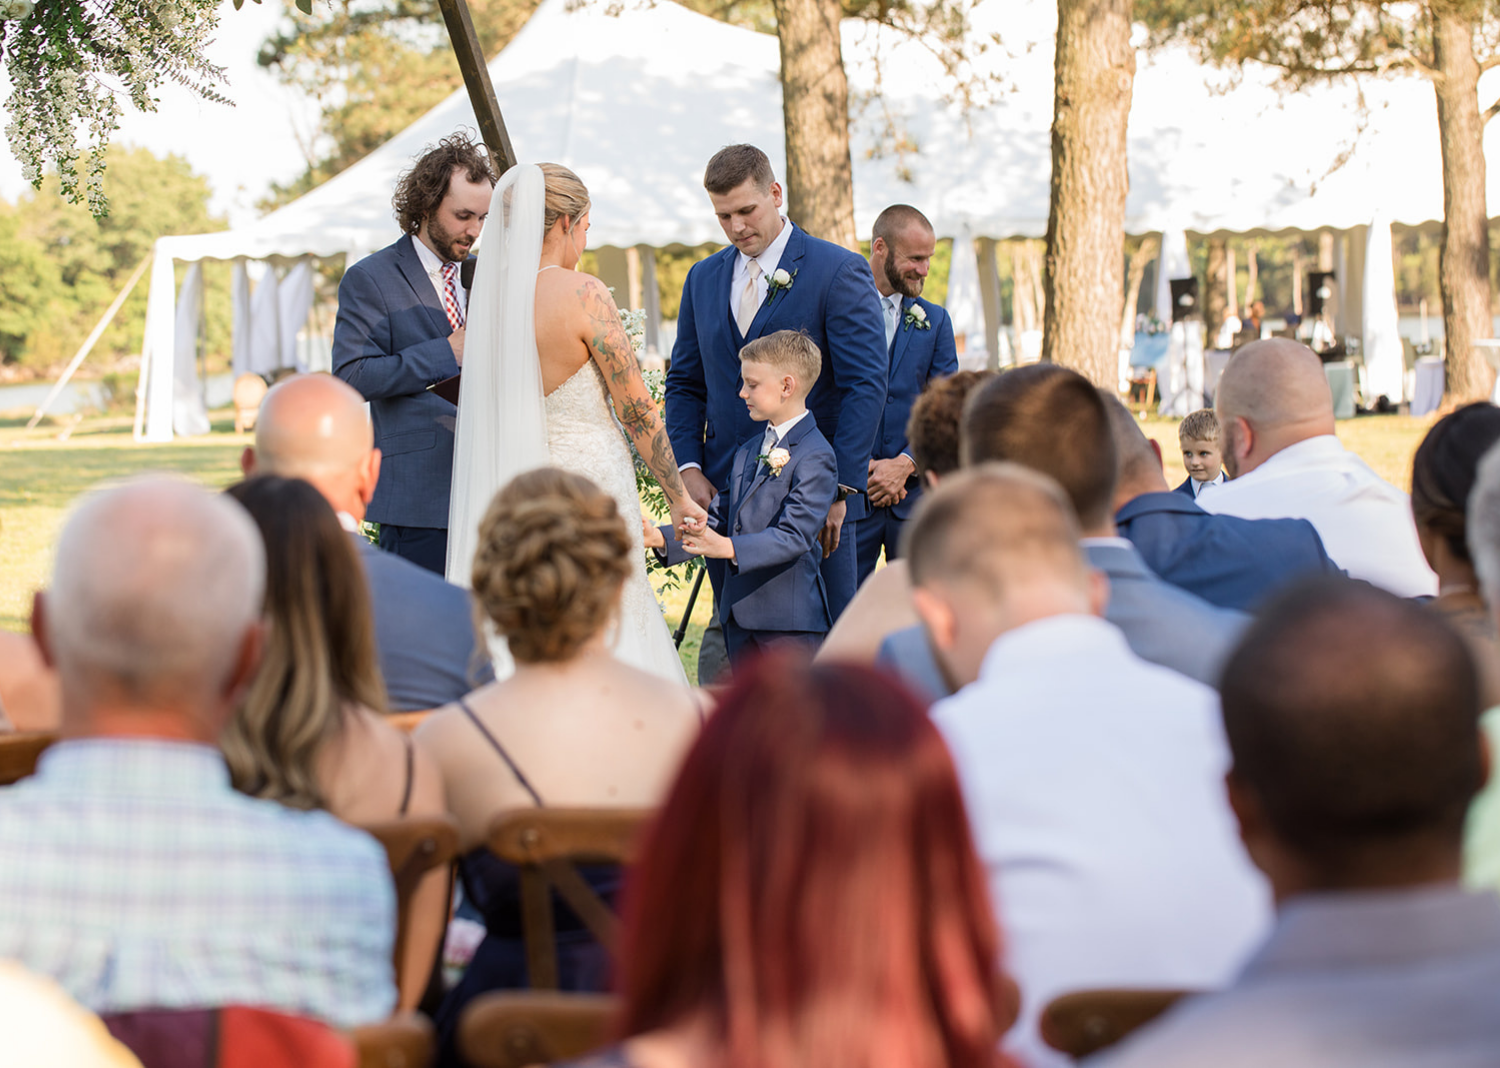 little groomsmen gives bride and groom their wedding rings as a ring bearer